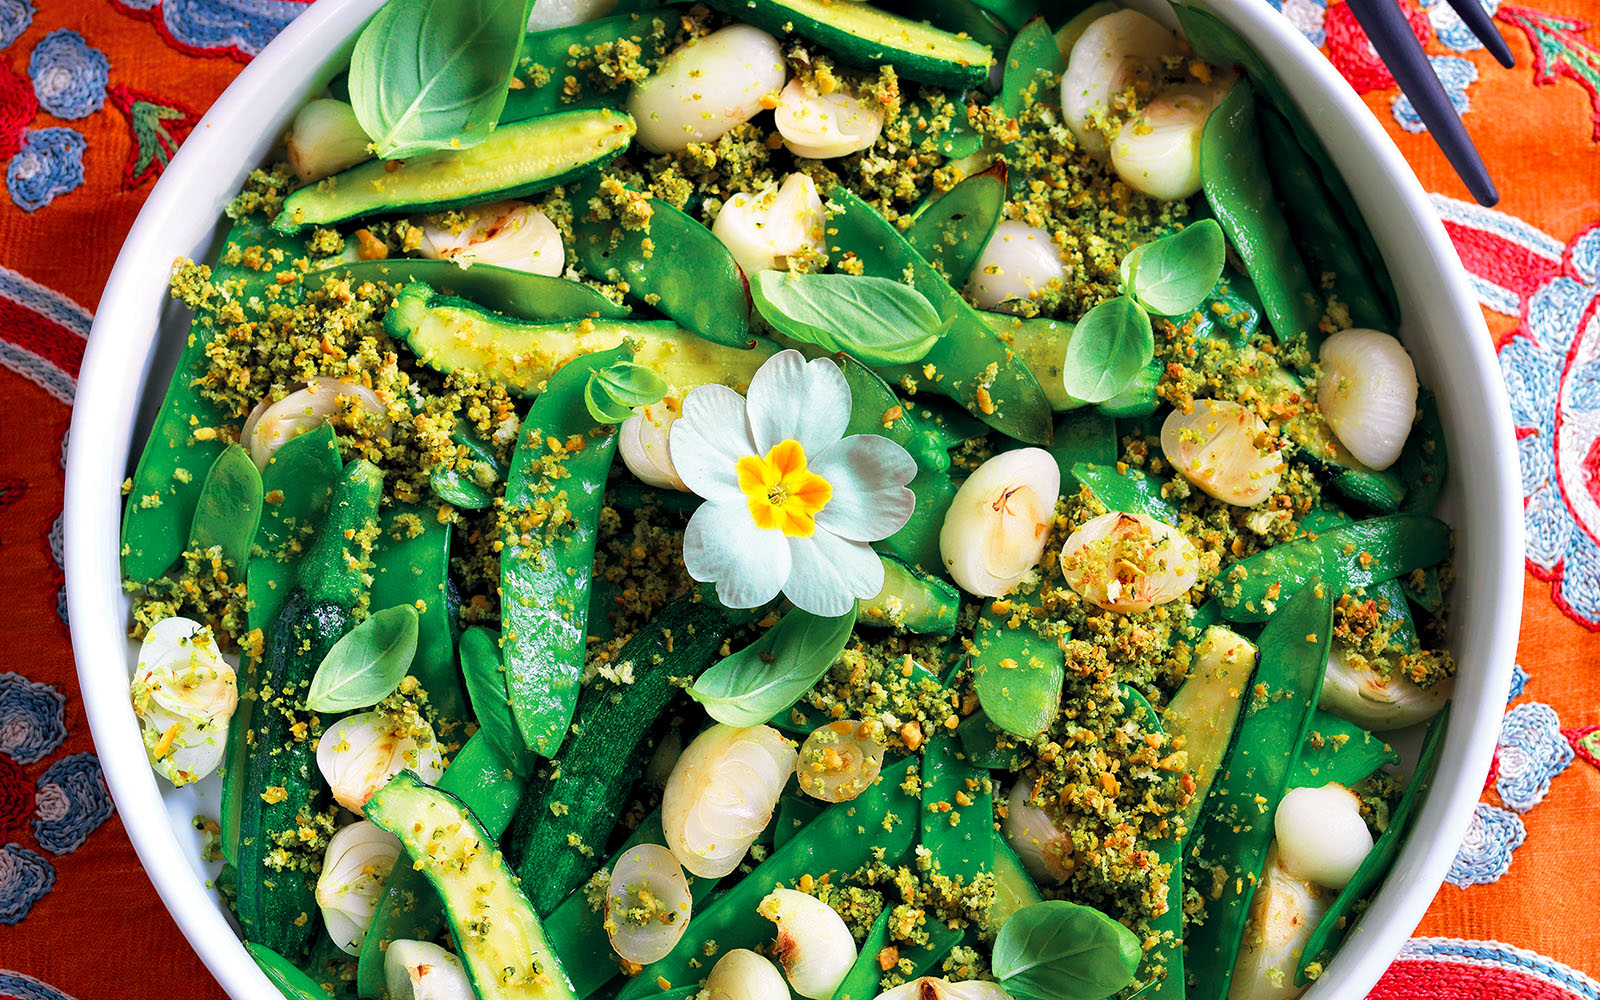 Recipe Zucchini, taccole and onions with pistachio and basil crumbs